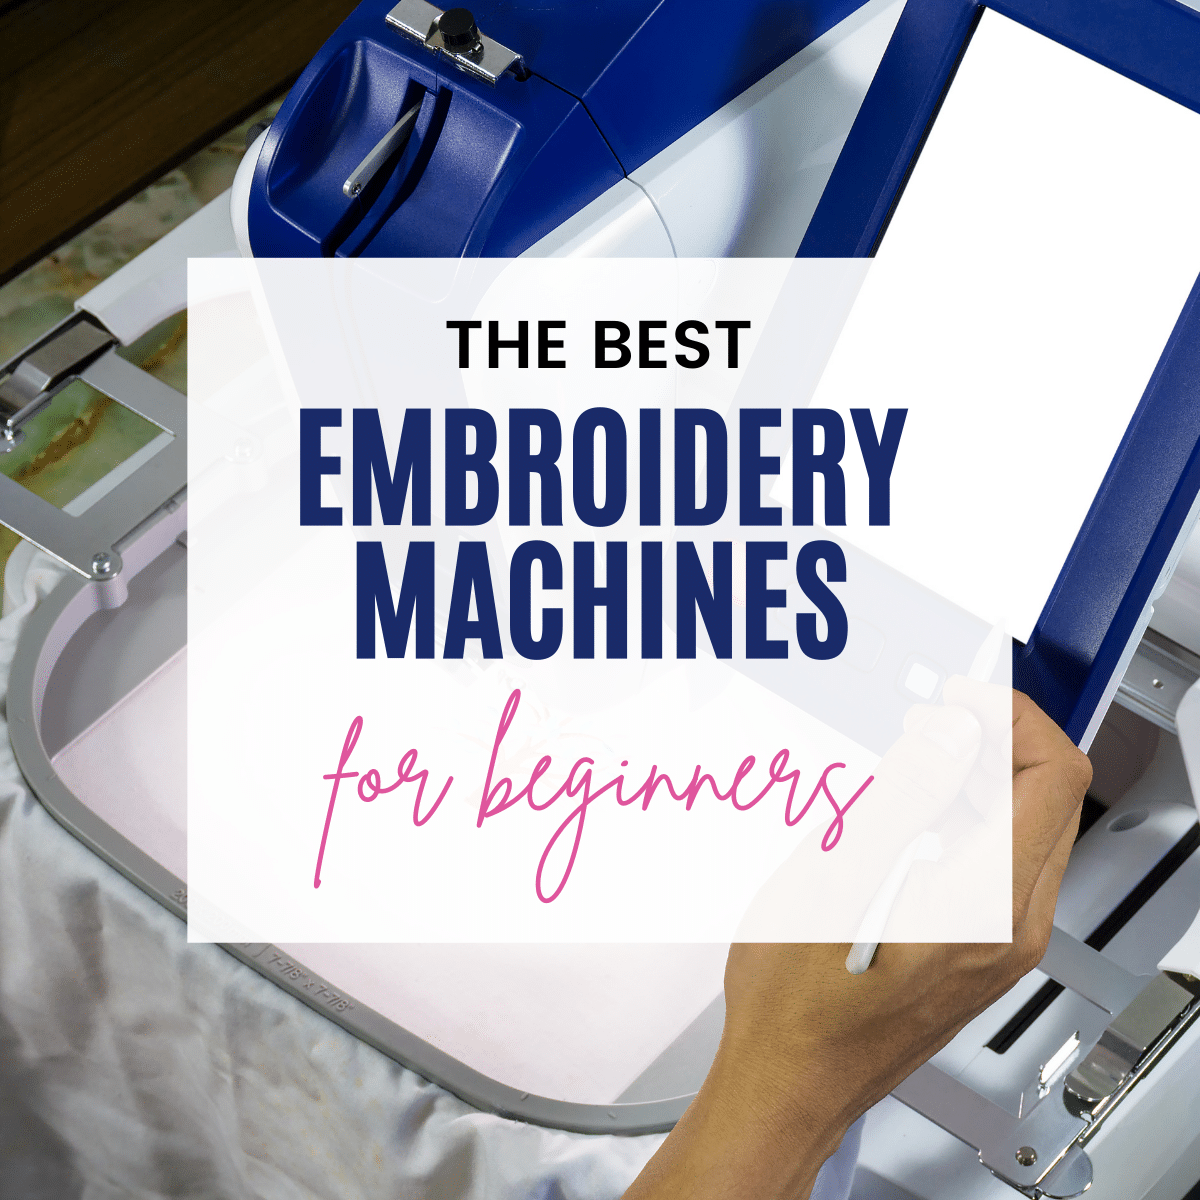 6 Best Embroidery Machines for Beginners in 2021